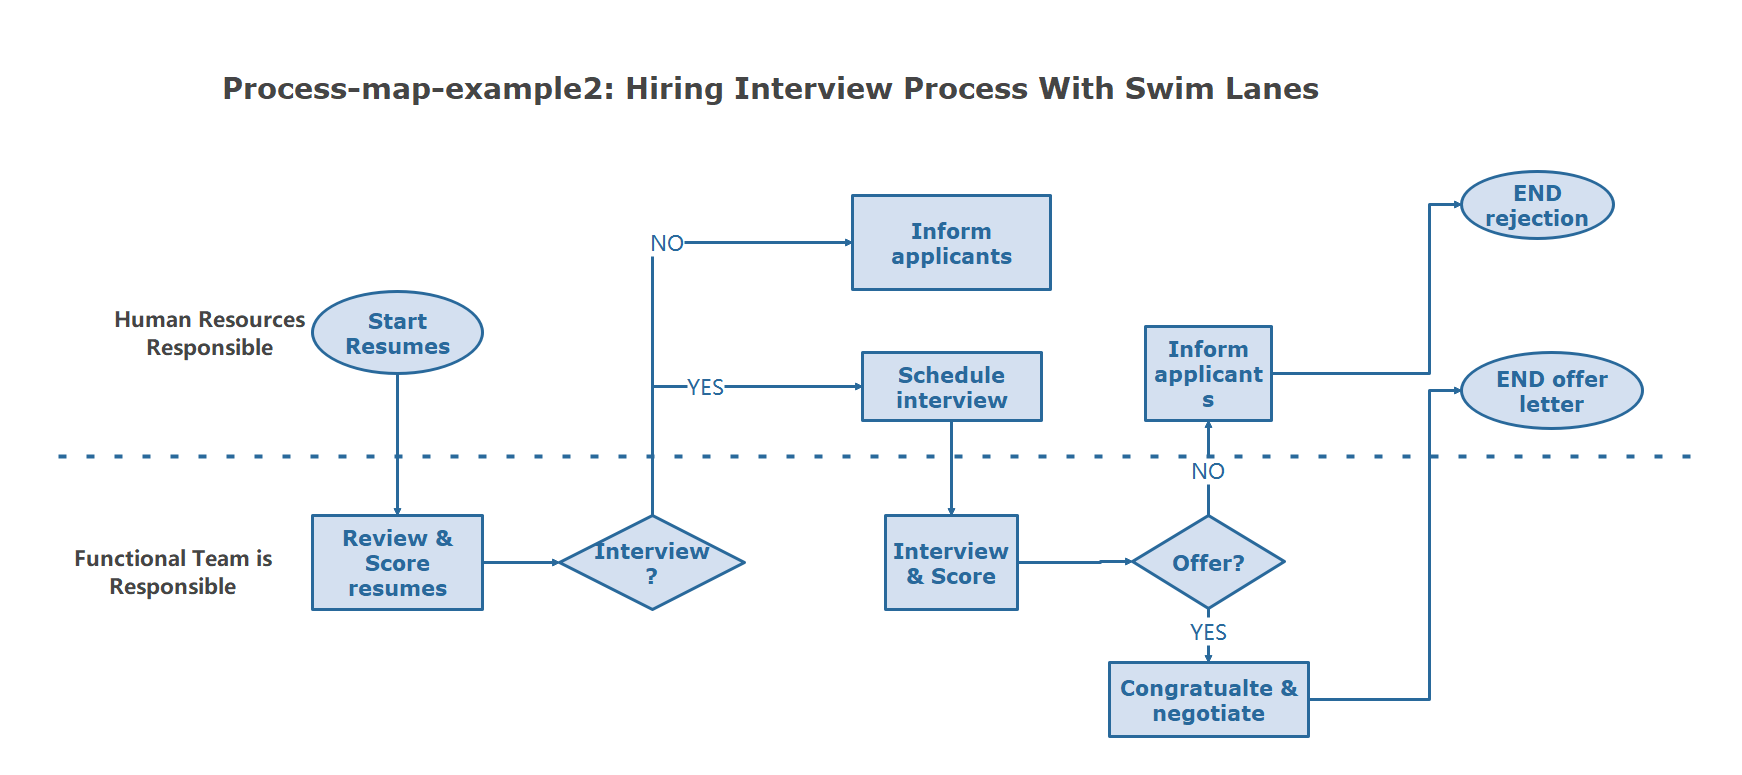 Hiring Interview Process With Swim Lanes